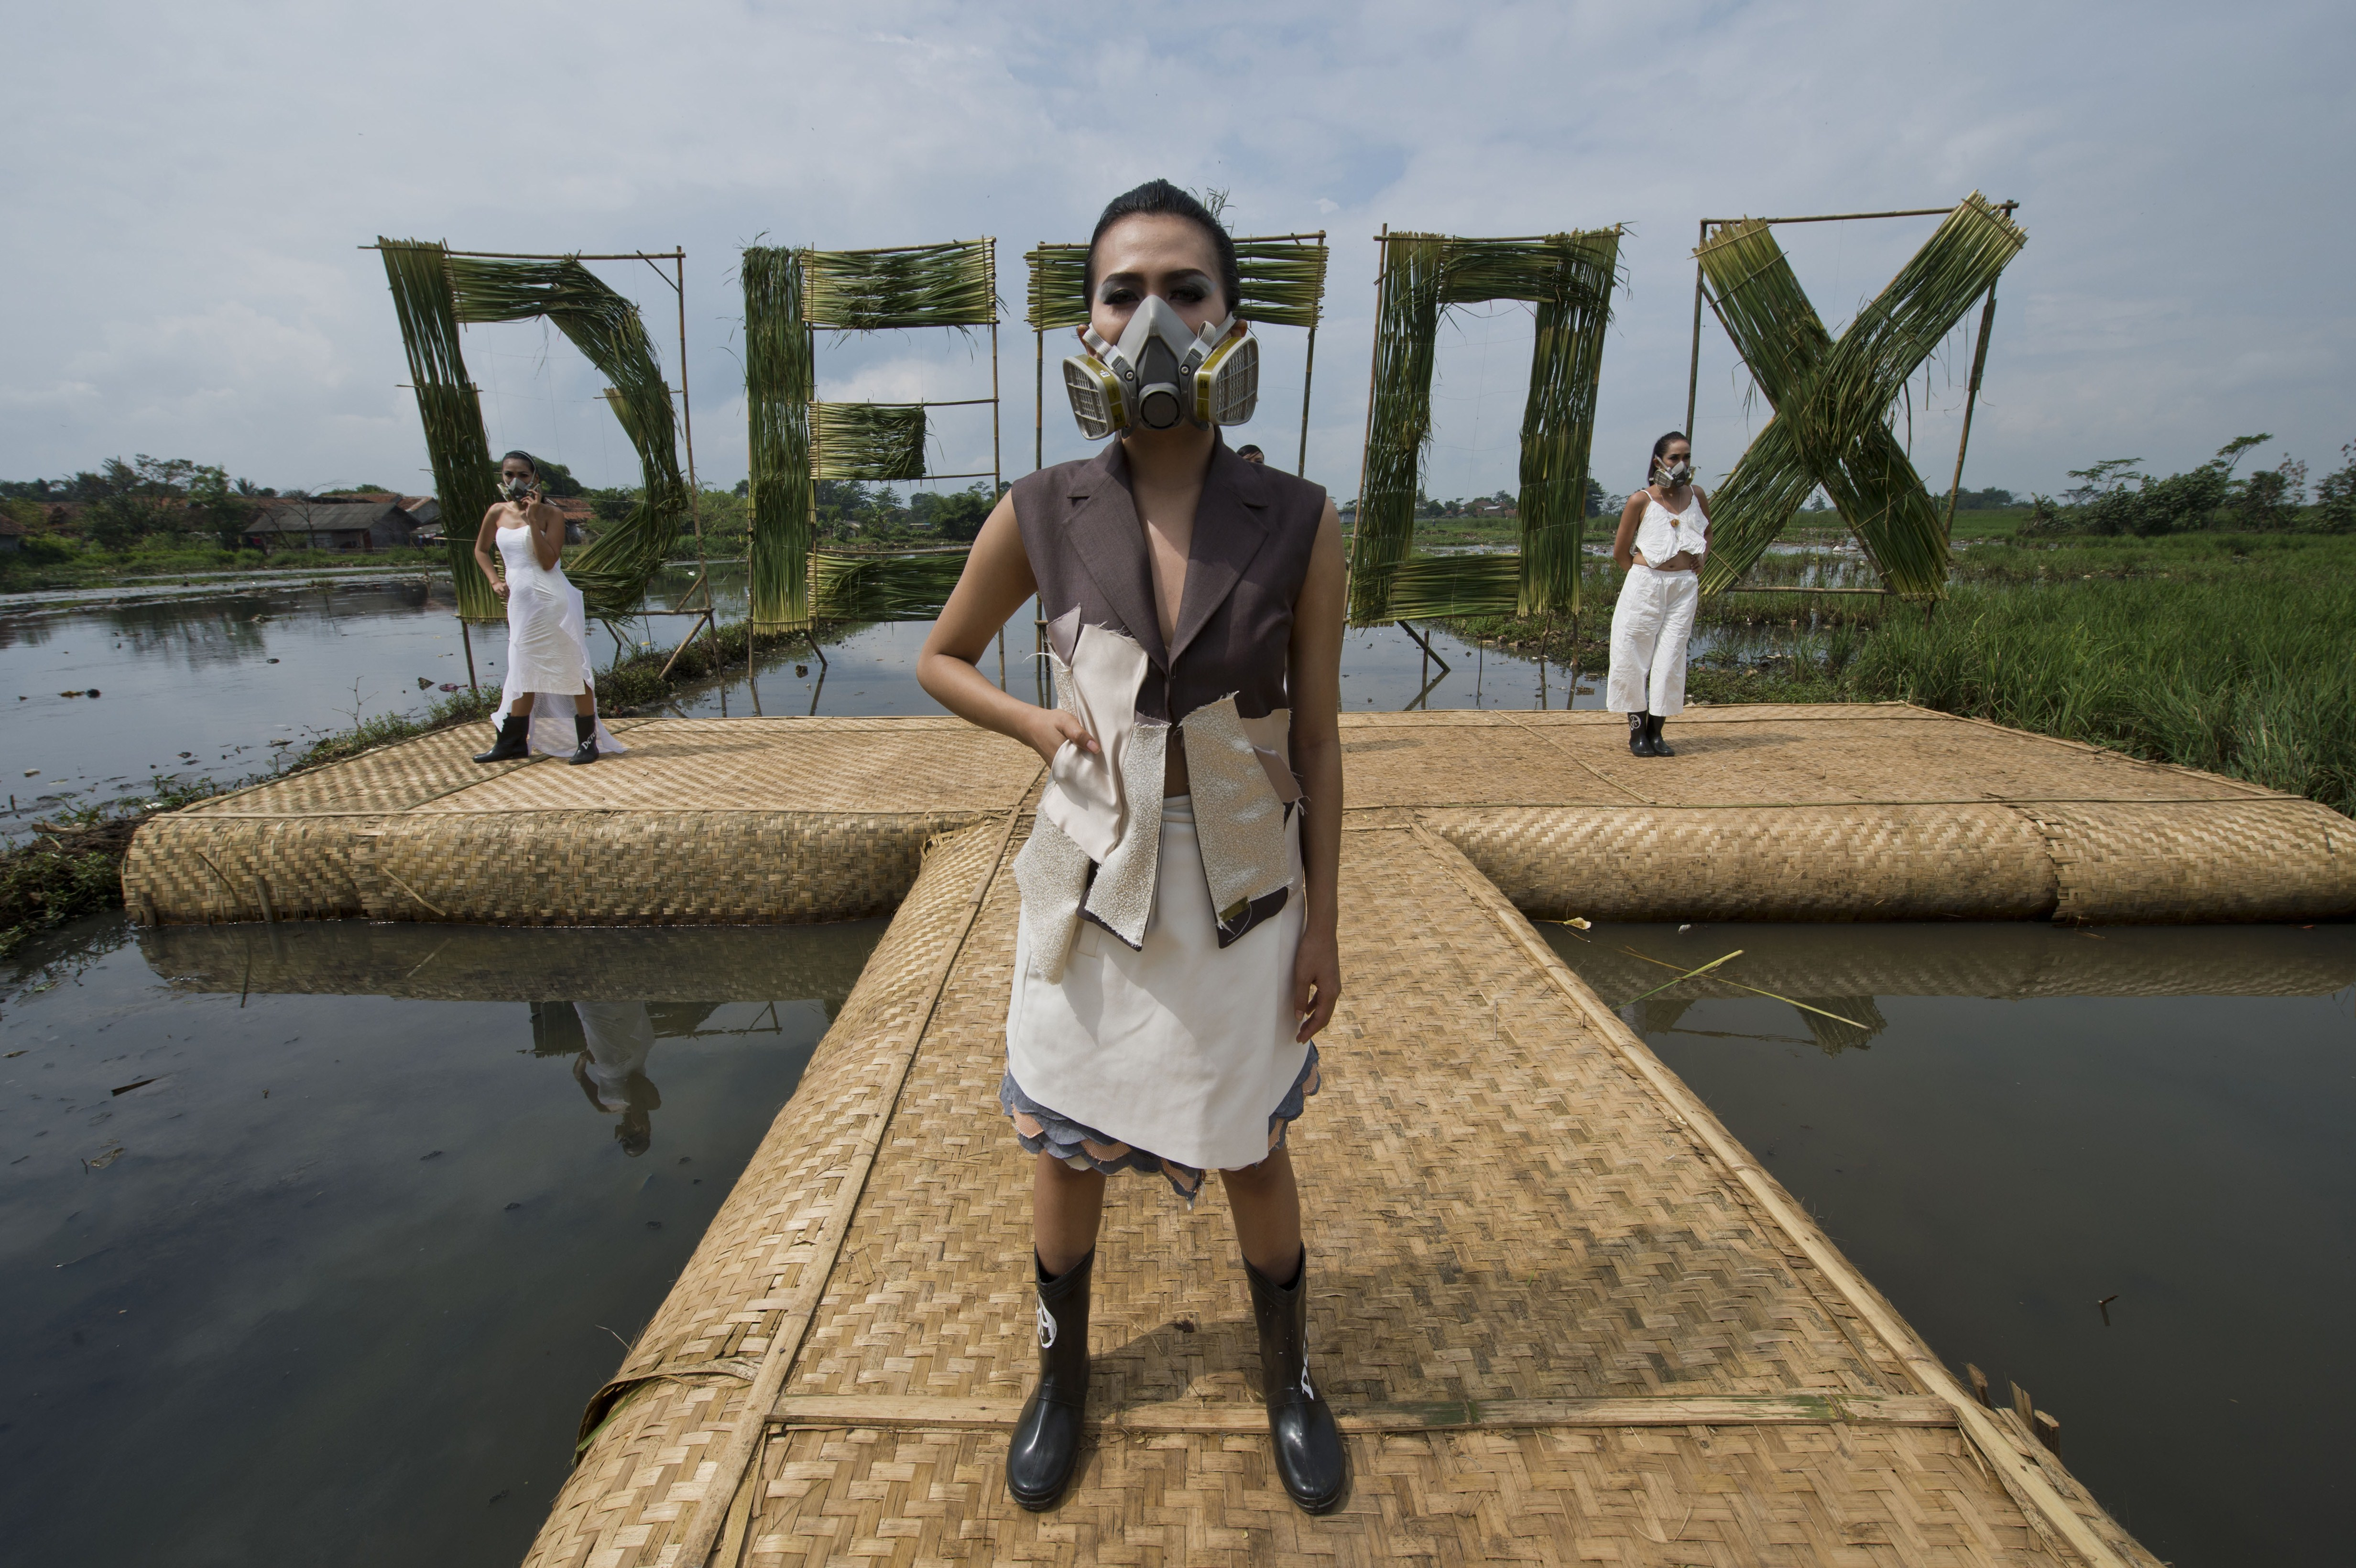 Greenpeace Activists Put On A Fashion Show To Pressure Companies Remove Toxic Chemicals From Their Supply Chains In Indonesia And Address Water